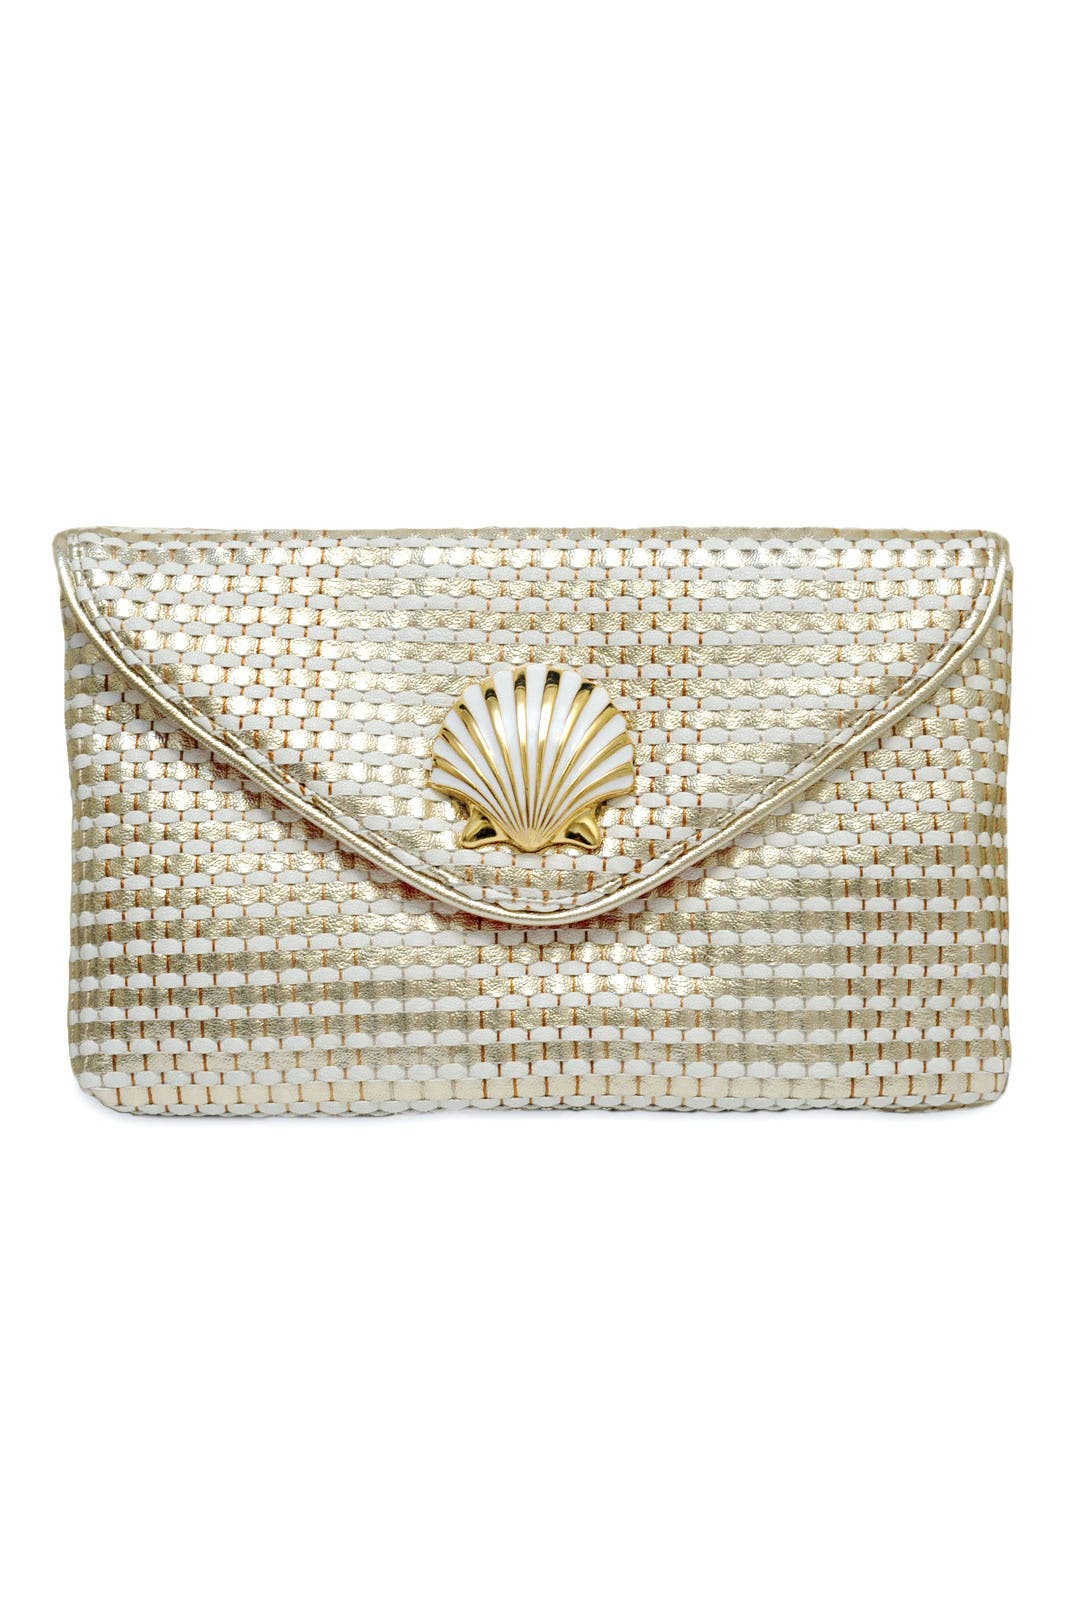 Summer Chic Clutch by Lilly Pulitzer Handbags